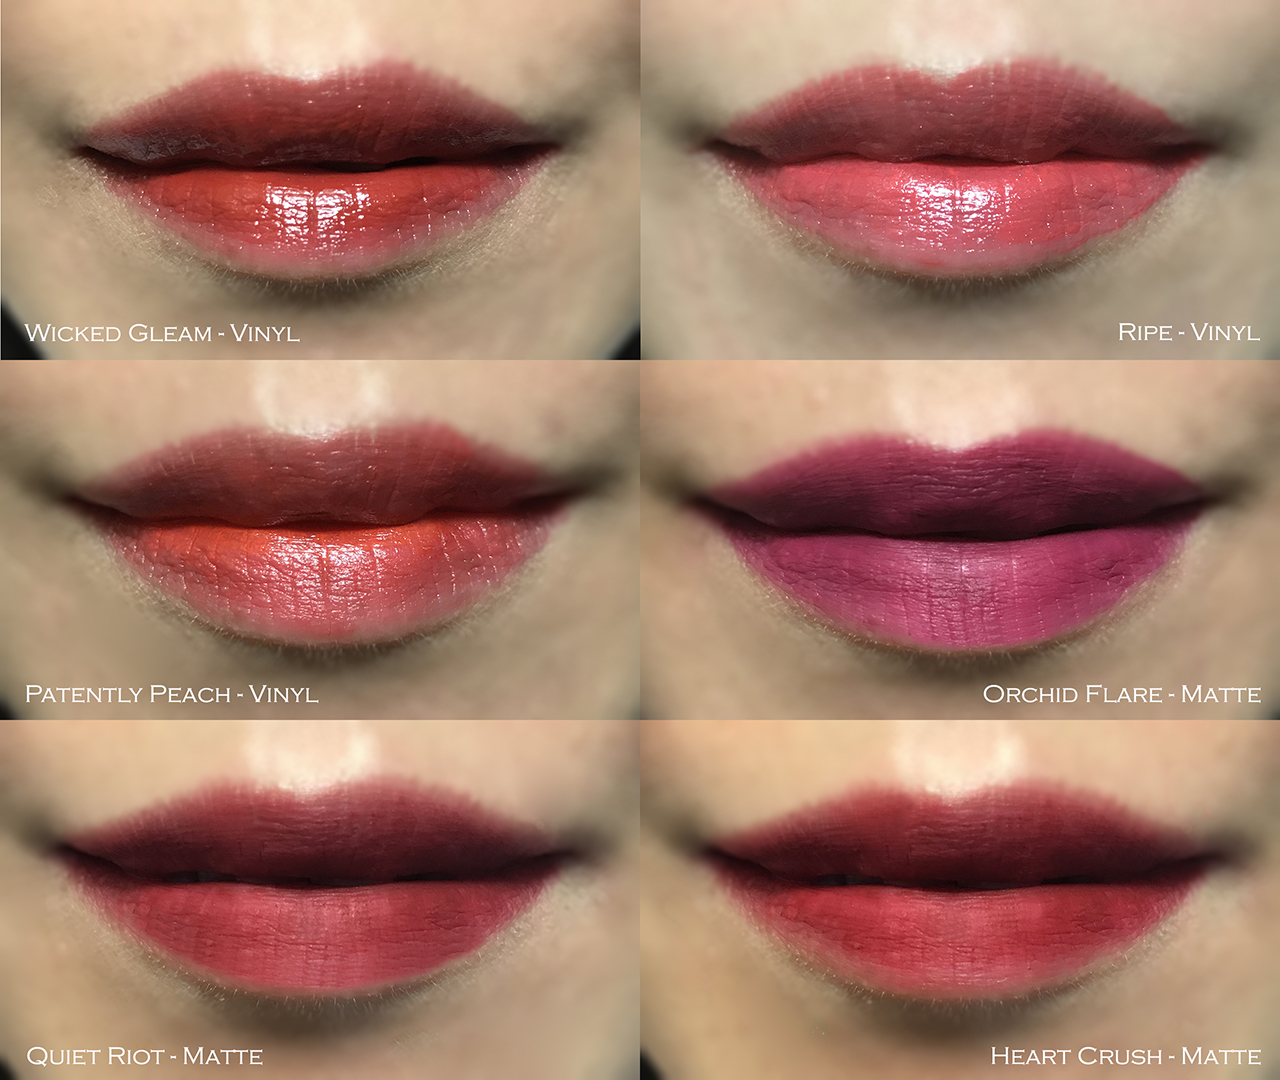 Estee Lauder Pure Color Envy Liquid Lip Color swatches